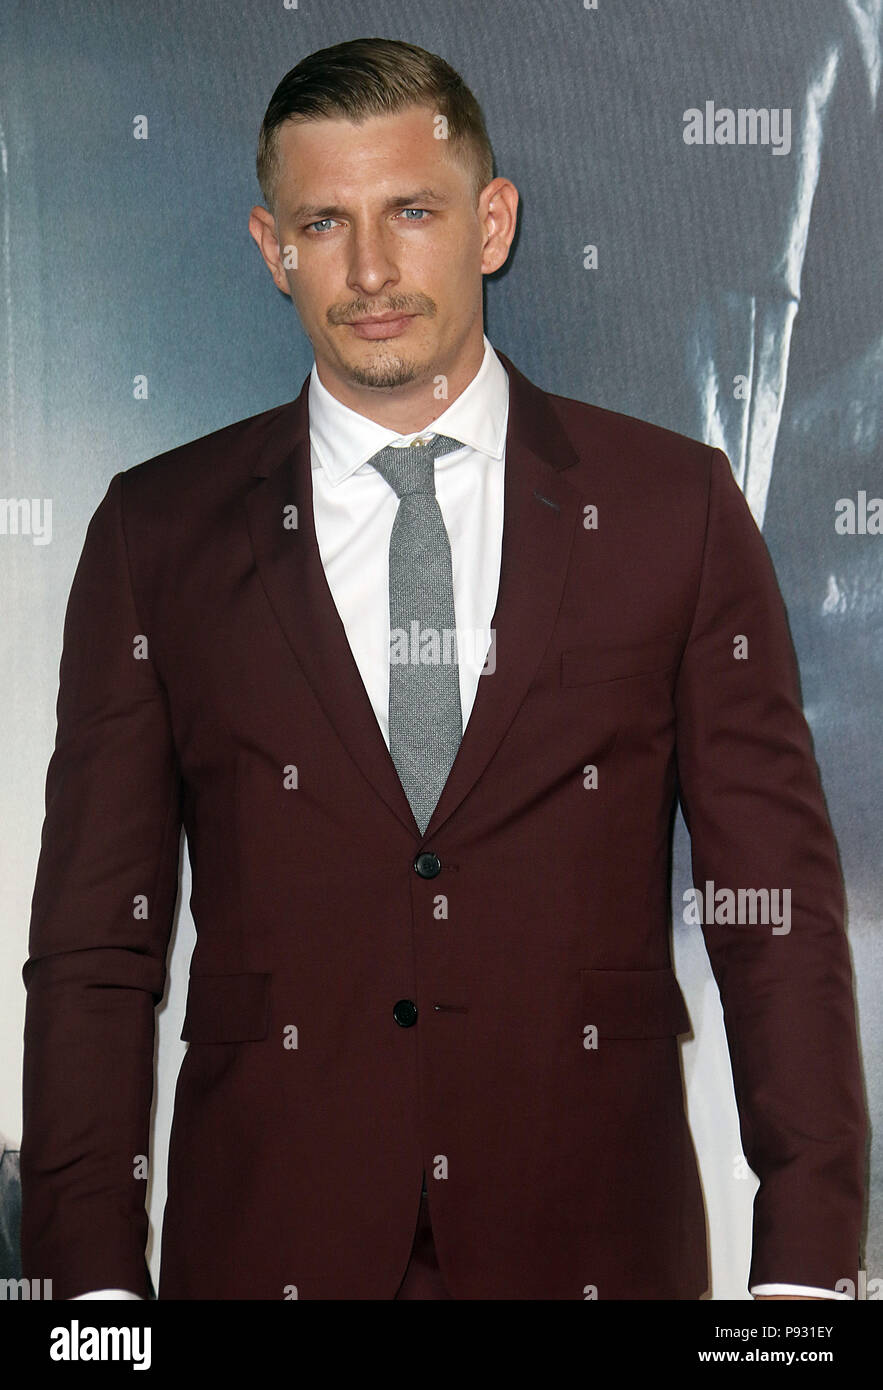 Jul 13, 2018  - Frederick Schmidt attending 'Mission Impossible - Fallout' UK Premiere at BFI IMAX in London, England, UK - Stock Image